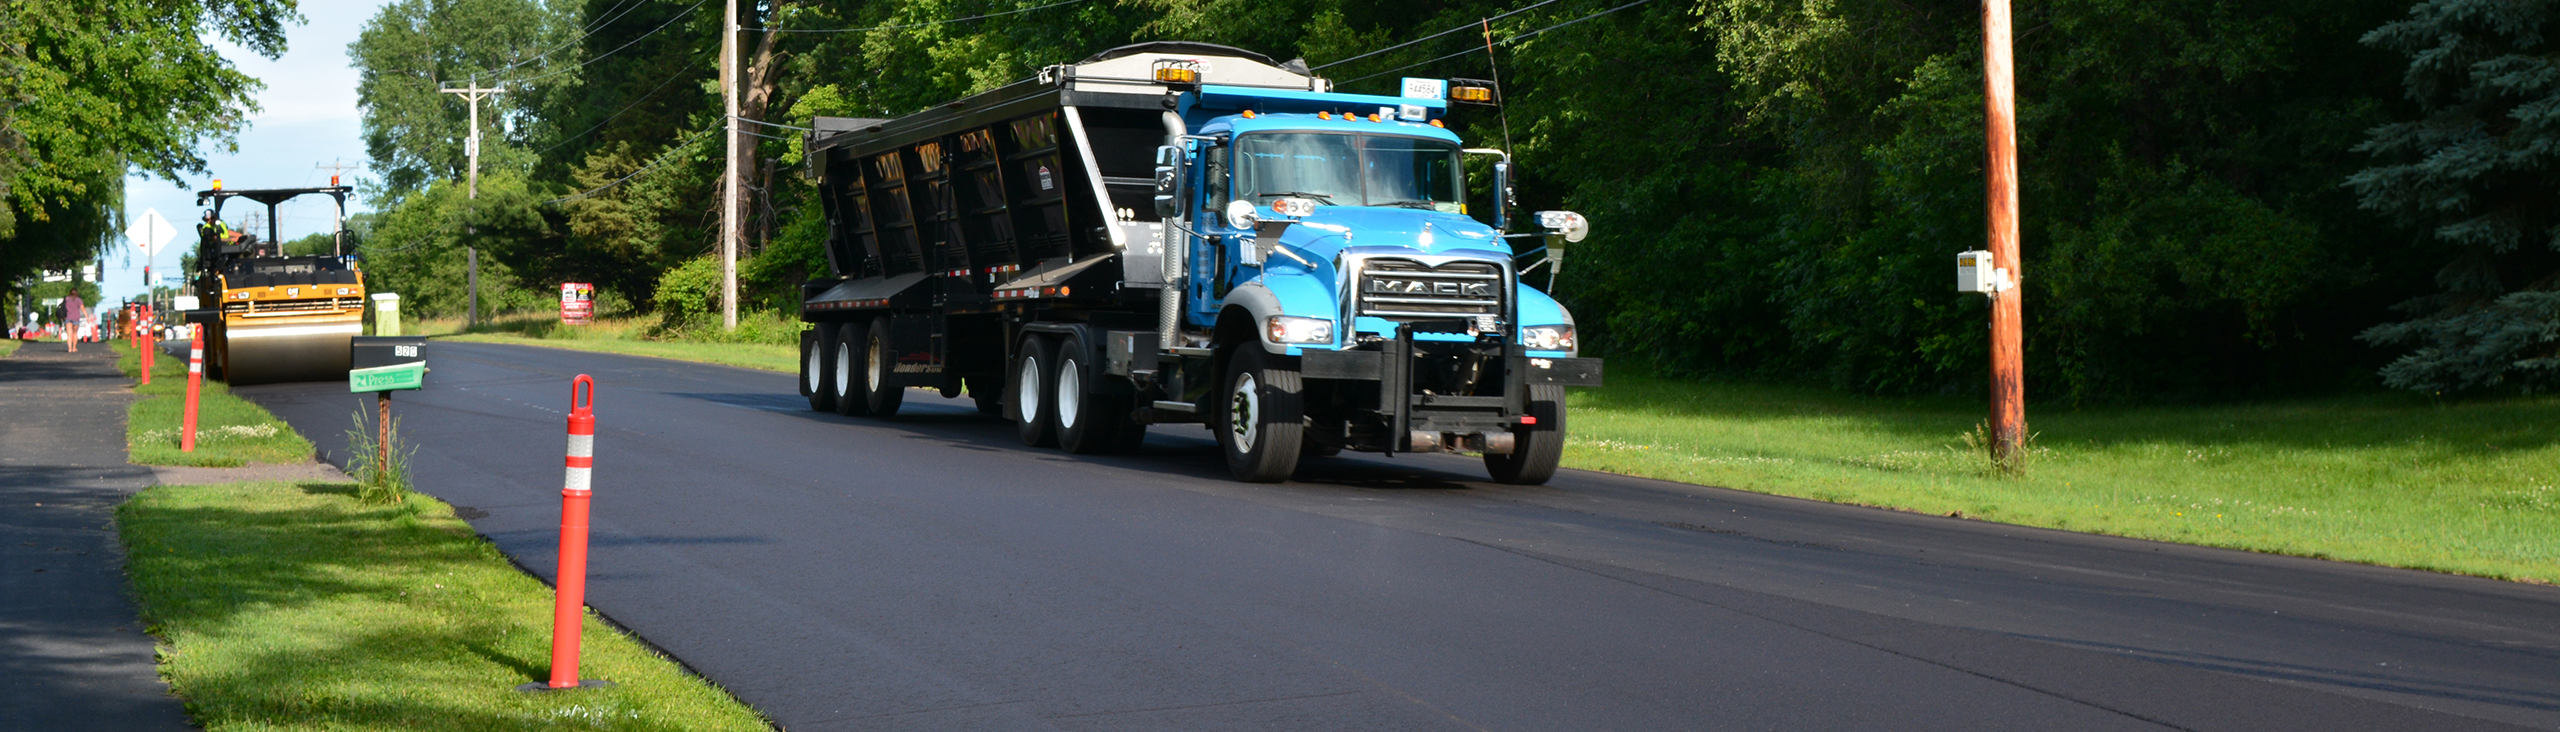 Public Works is resurfacing about 15 miles of county roads in 2017.